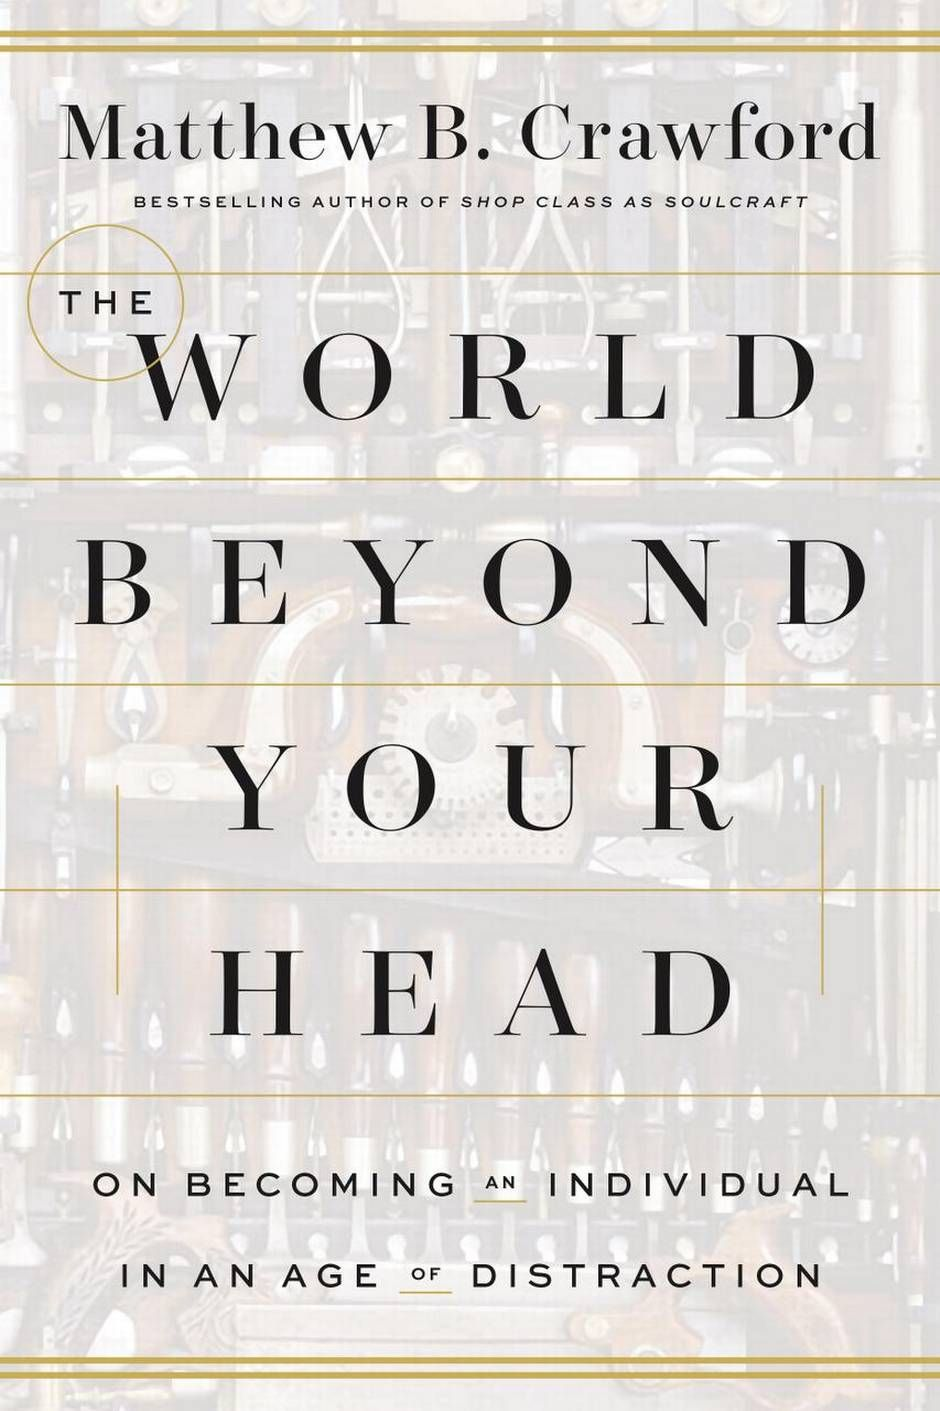 'The World Beyond Your Head: On Becoming an Individual in an Age of Distraction,' by Matthew B. Crawford explores the connection between what we do with our hands and what goes on in our minds.